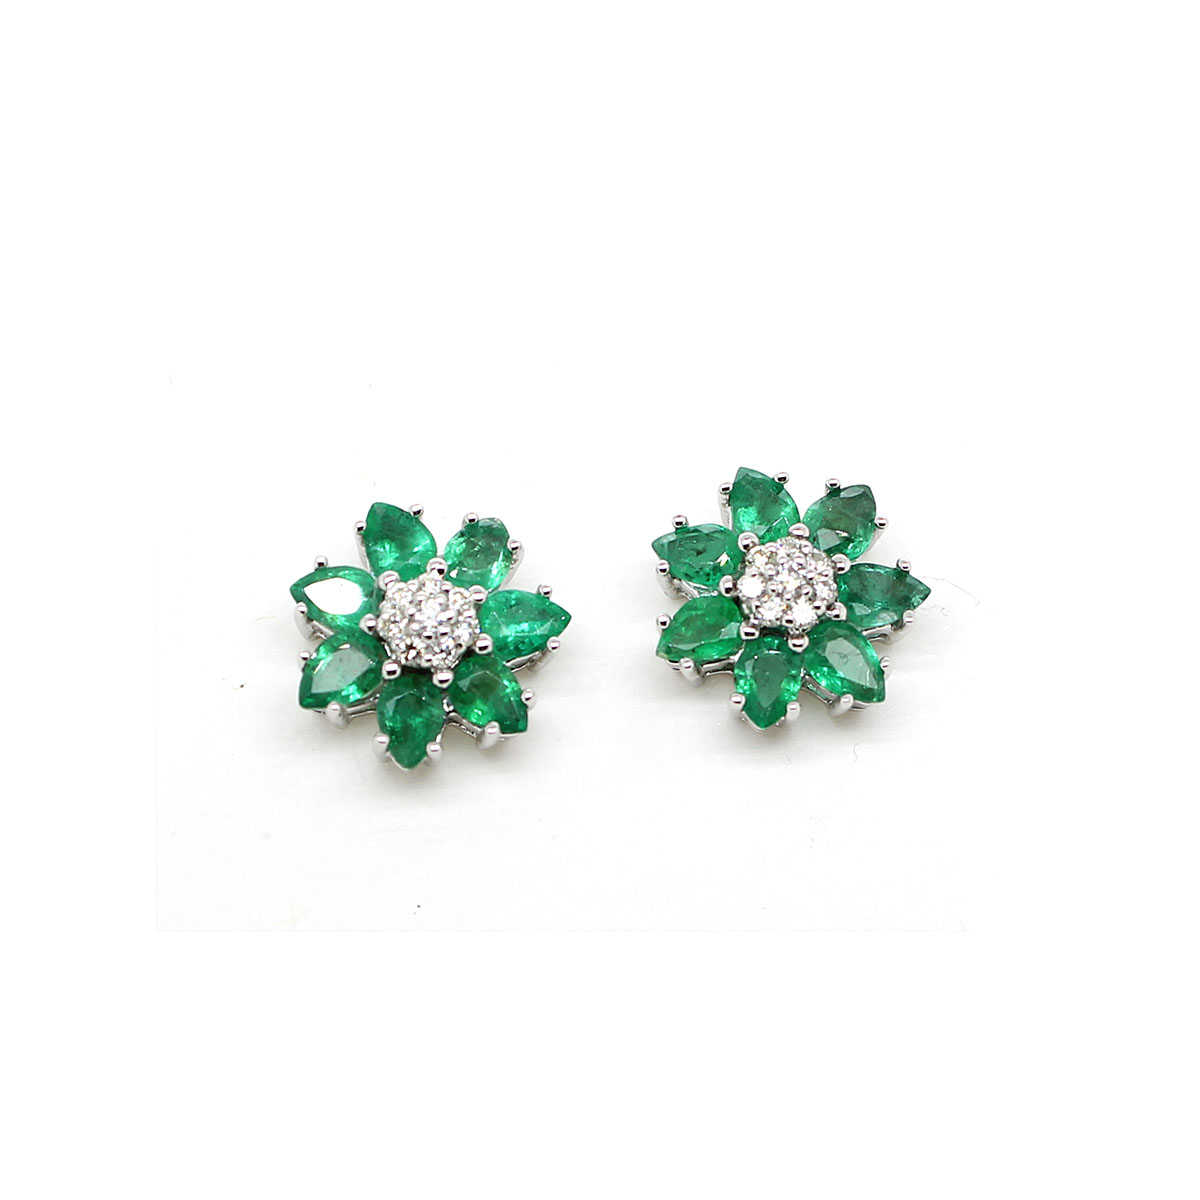 14 Karat White Gold Emerald and Diamond Flower Stud Earrings